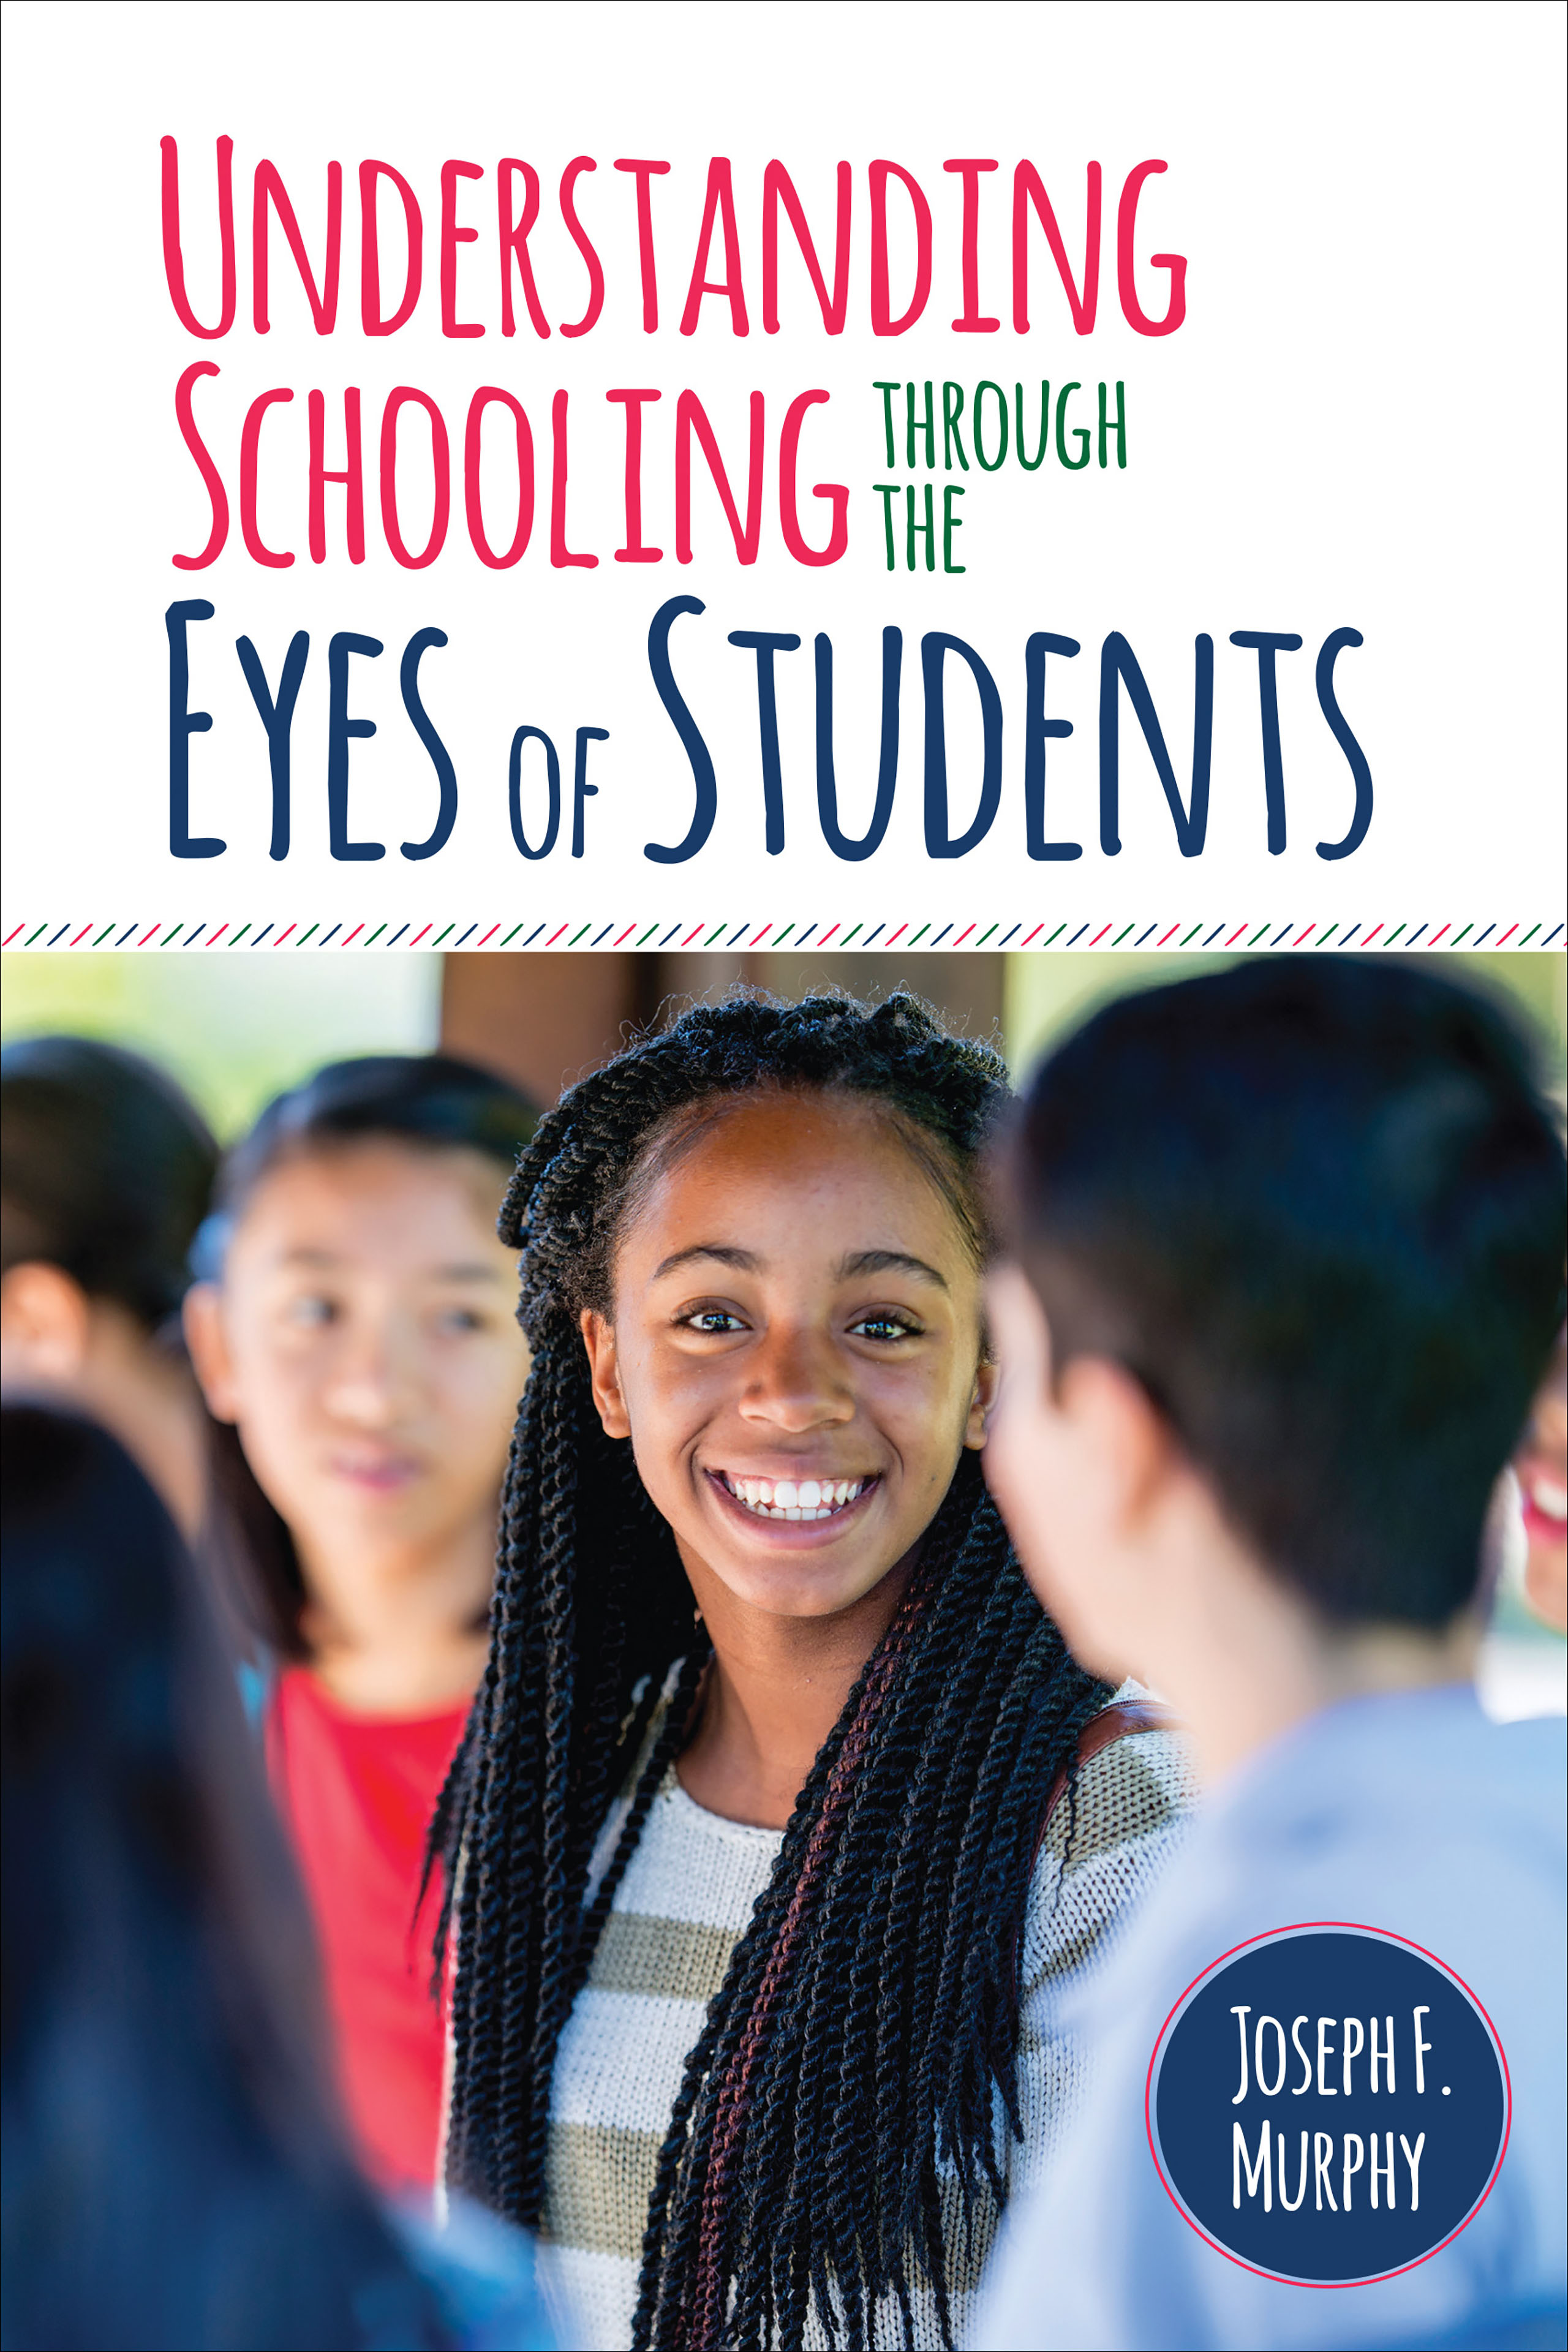 assessment through the student's eyes Window of the eye permits entrance of light, which passes through the lens to the retina well supplied with nerve endings, making it responsive to pain and touch iris circular disc of muscle containing pigments that determine eye color.